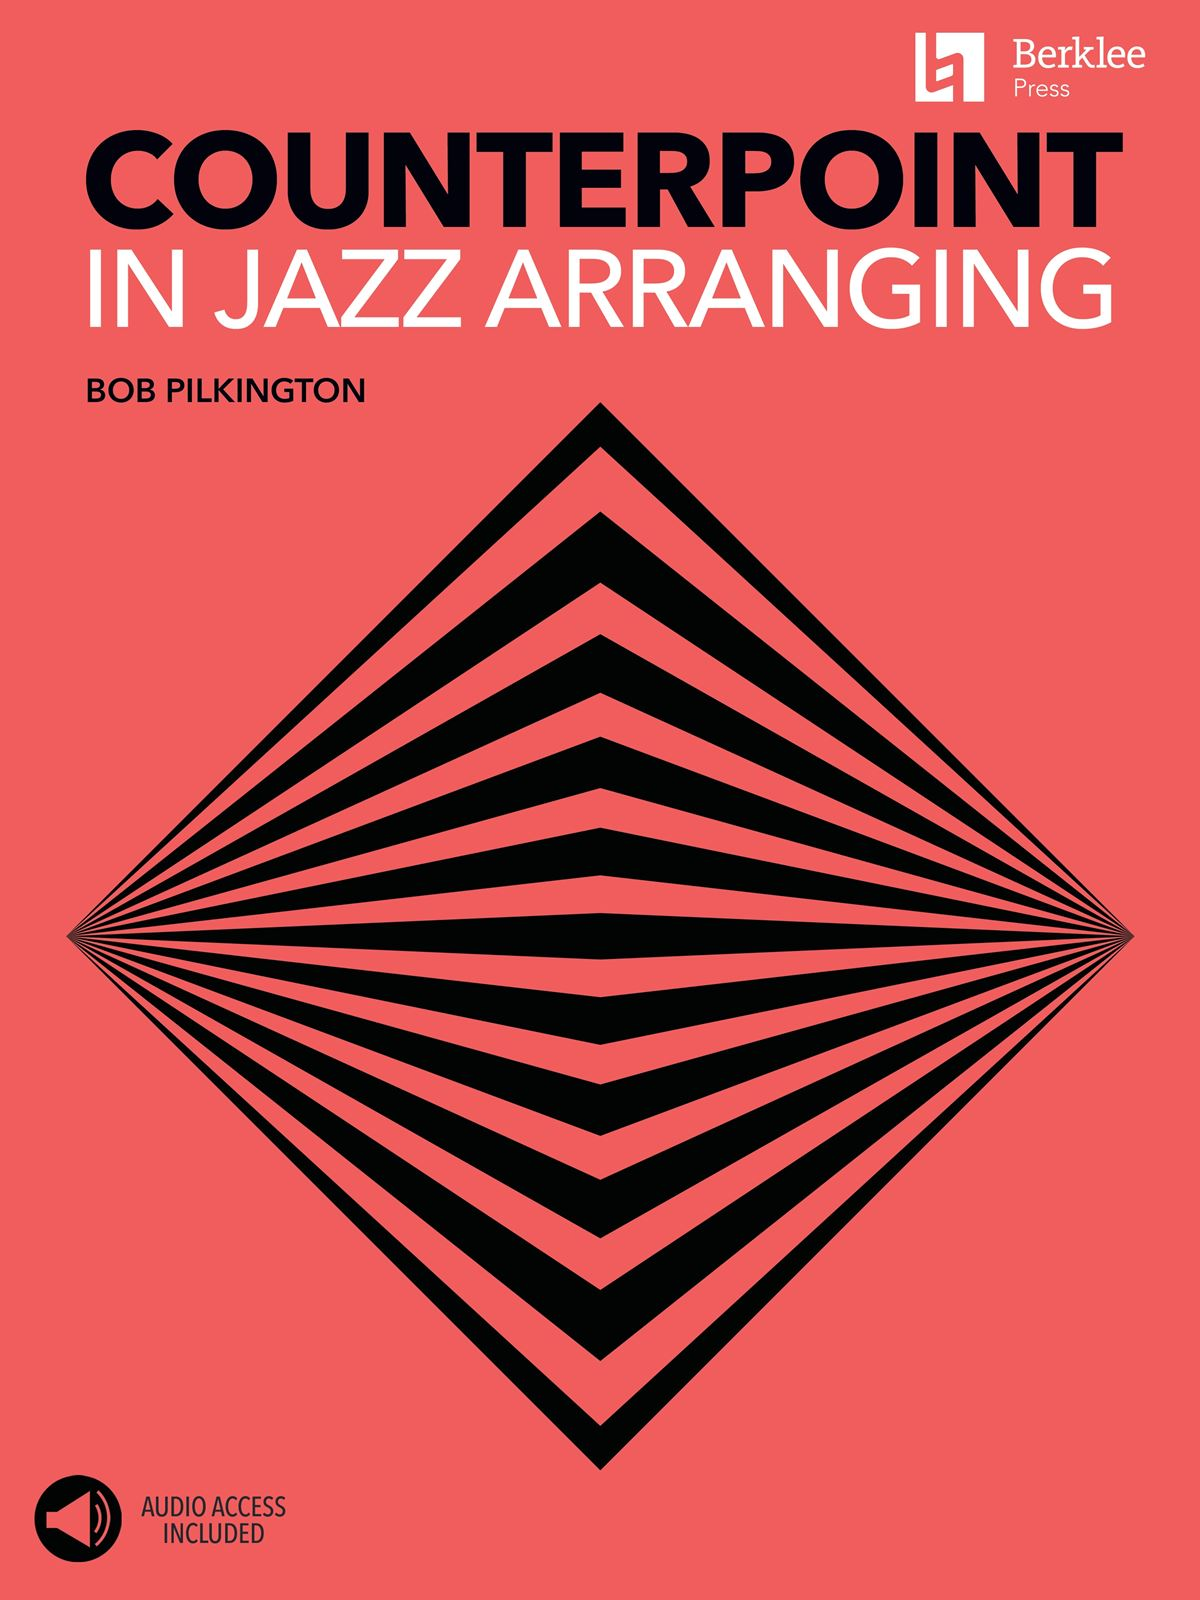 Counterpoint in Jazz Arranging: Theory